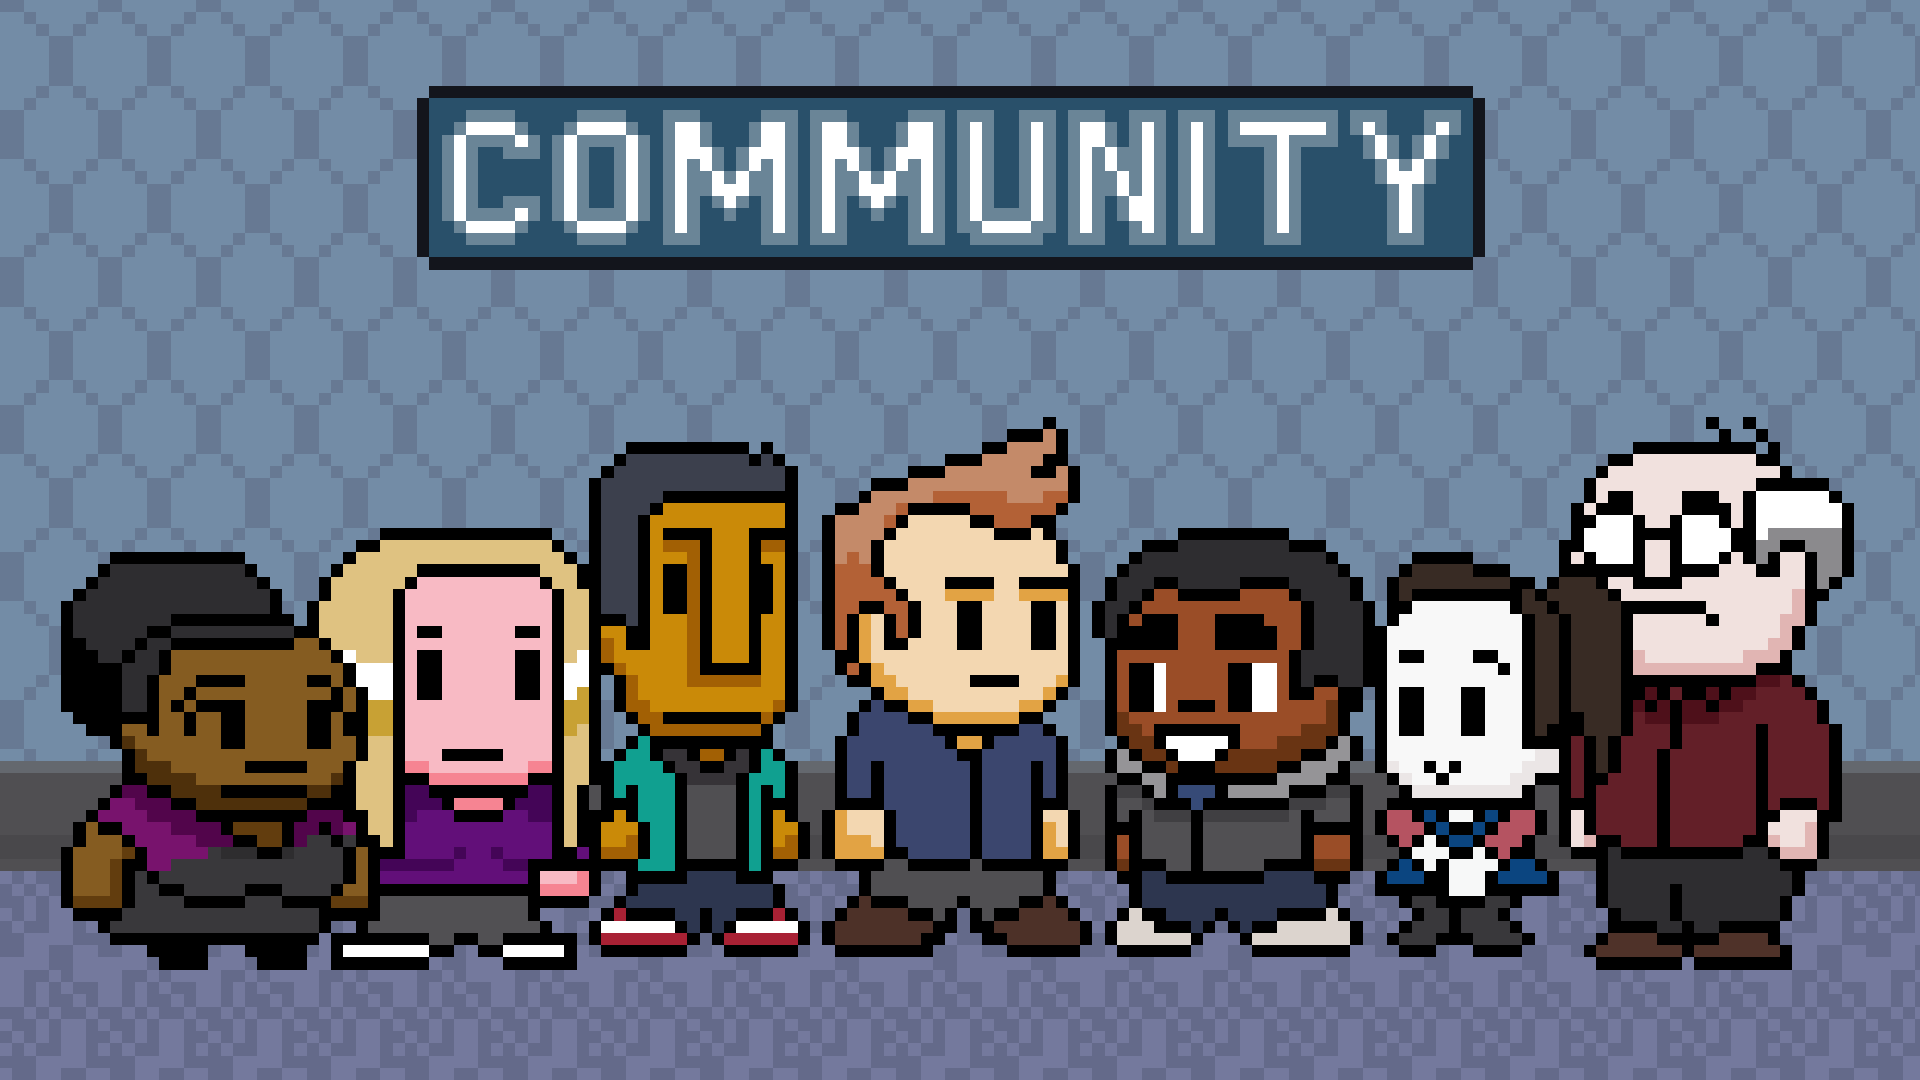 Community 8-bit wallpaper by zequihumano on DeviantArt